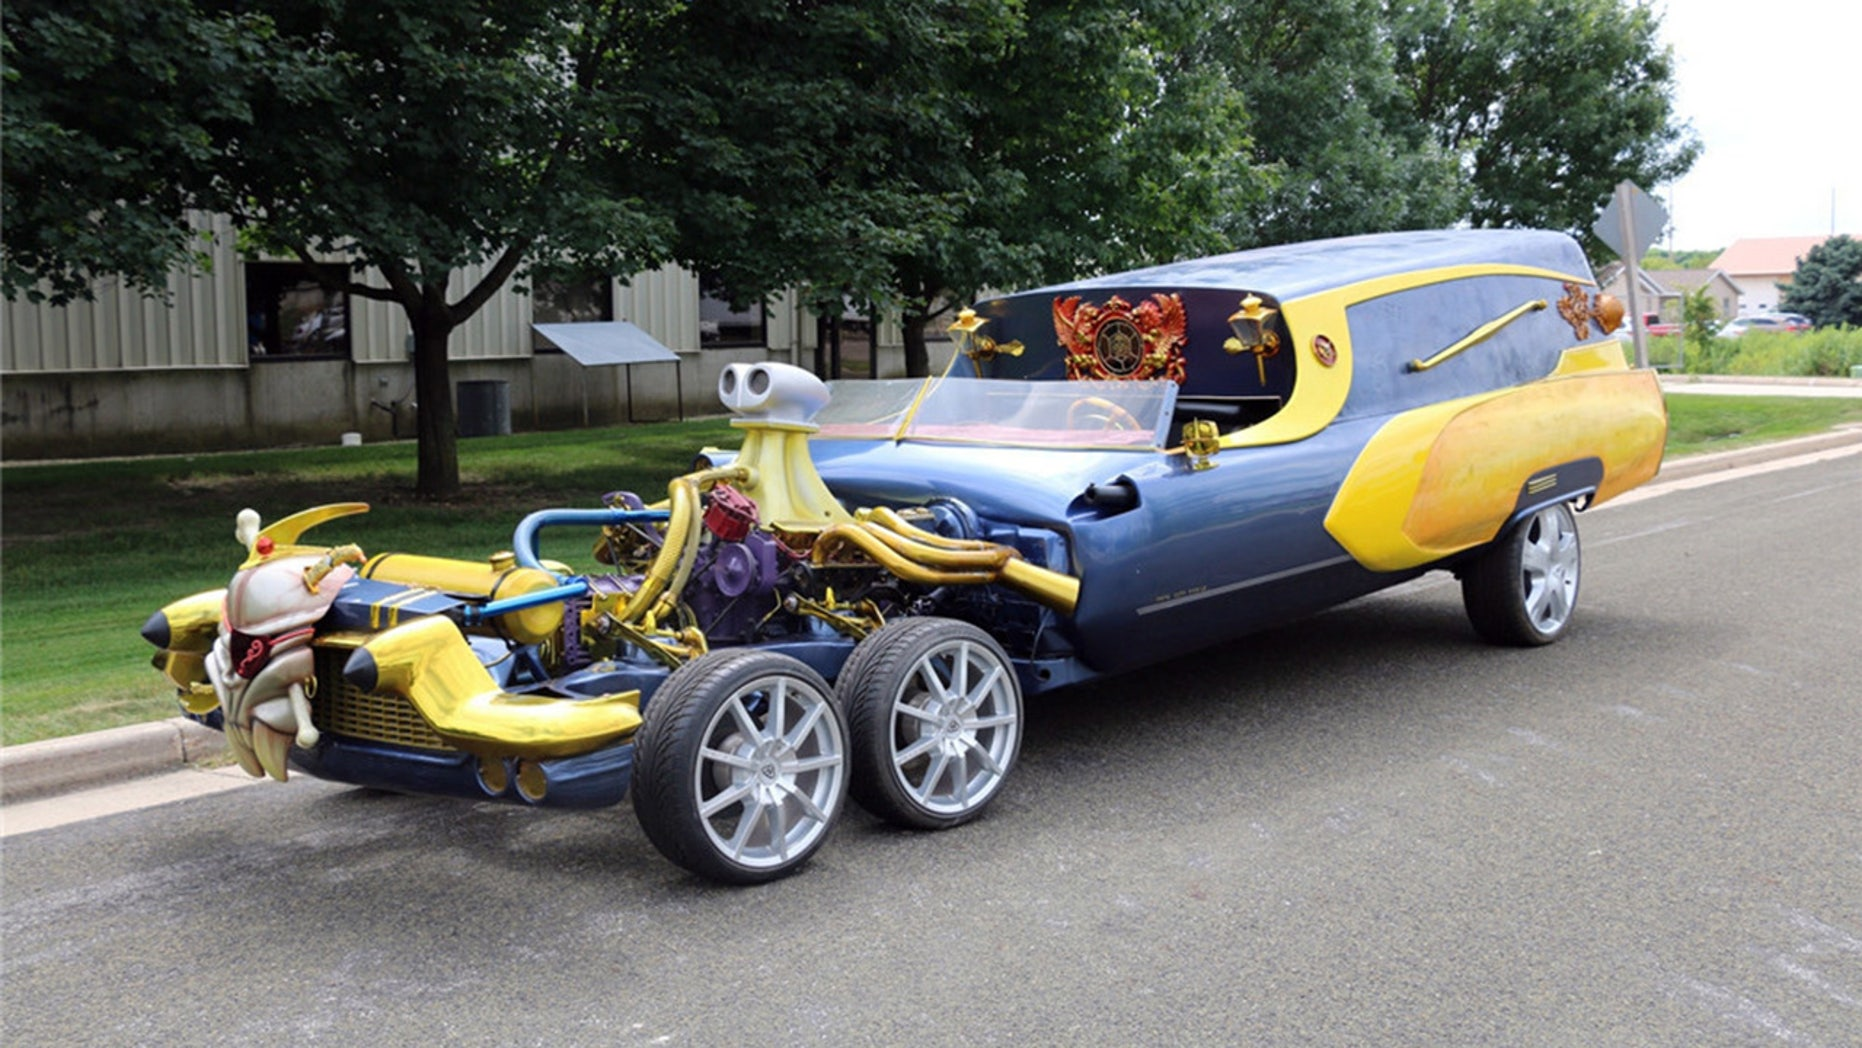 The Pirate Surf Mobile